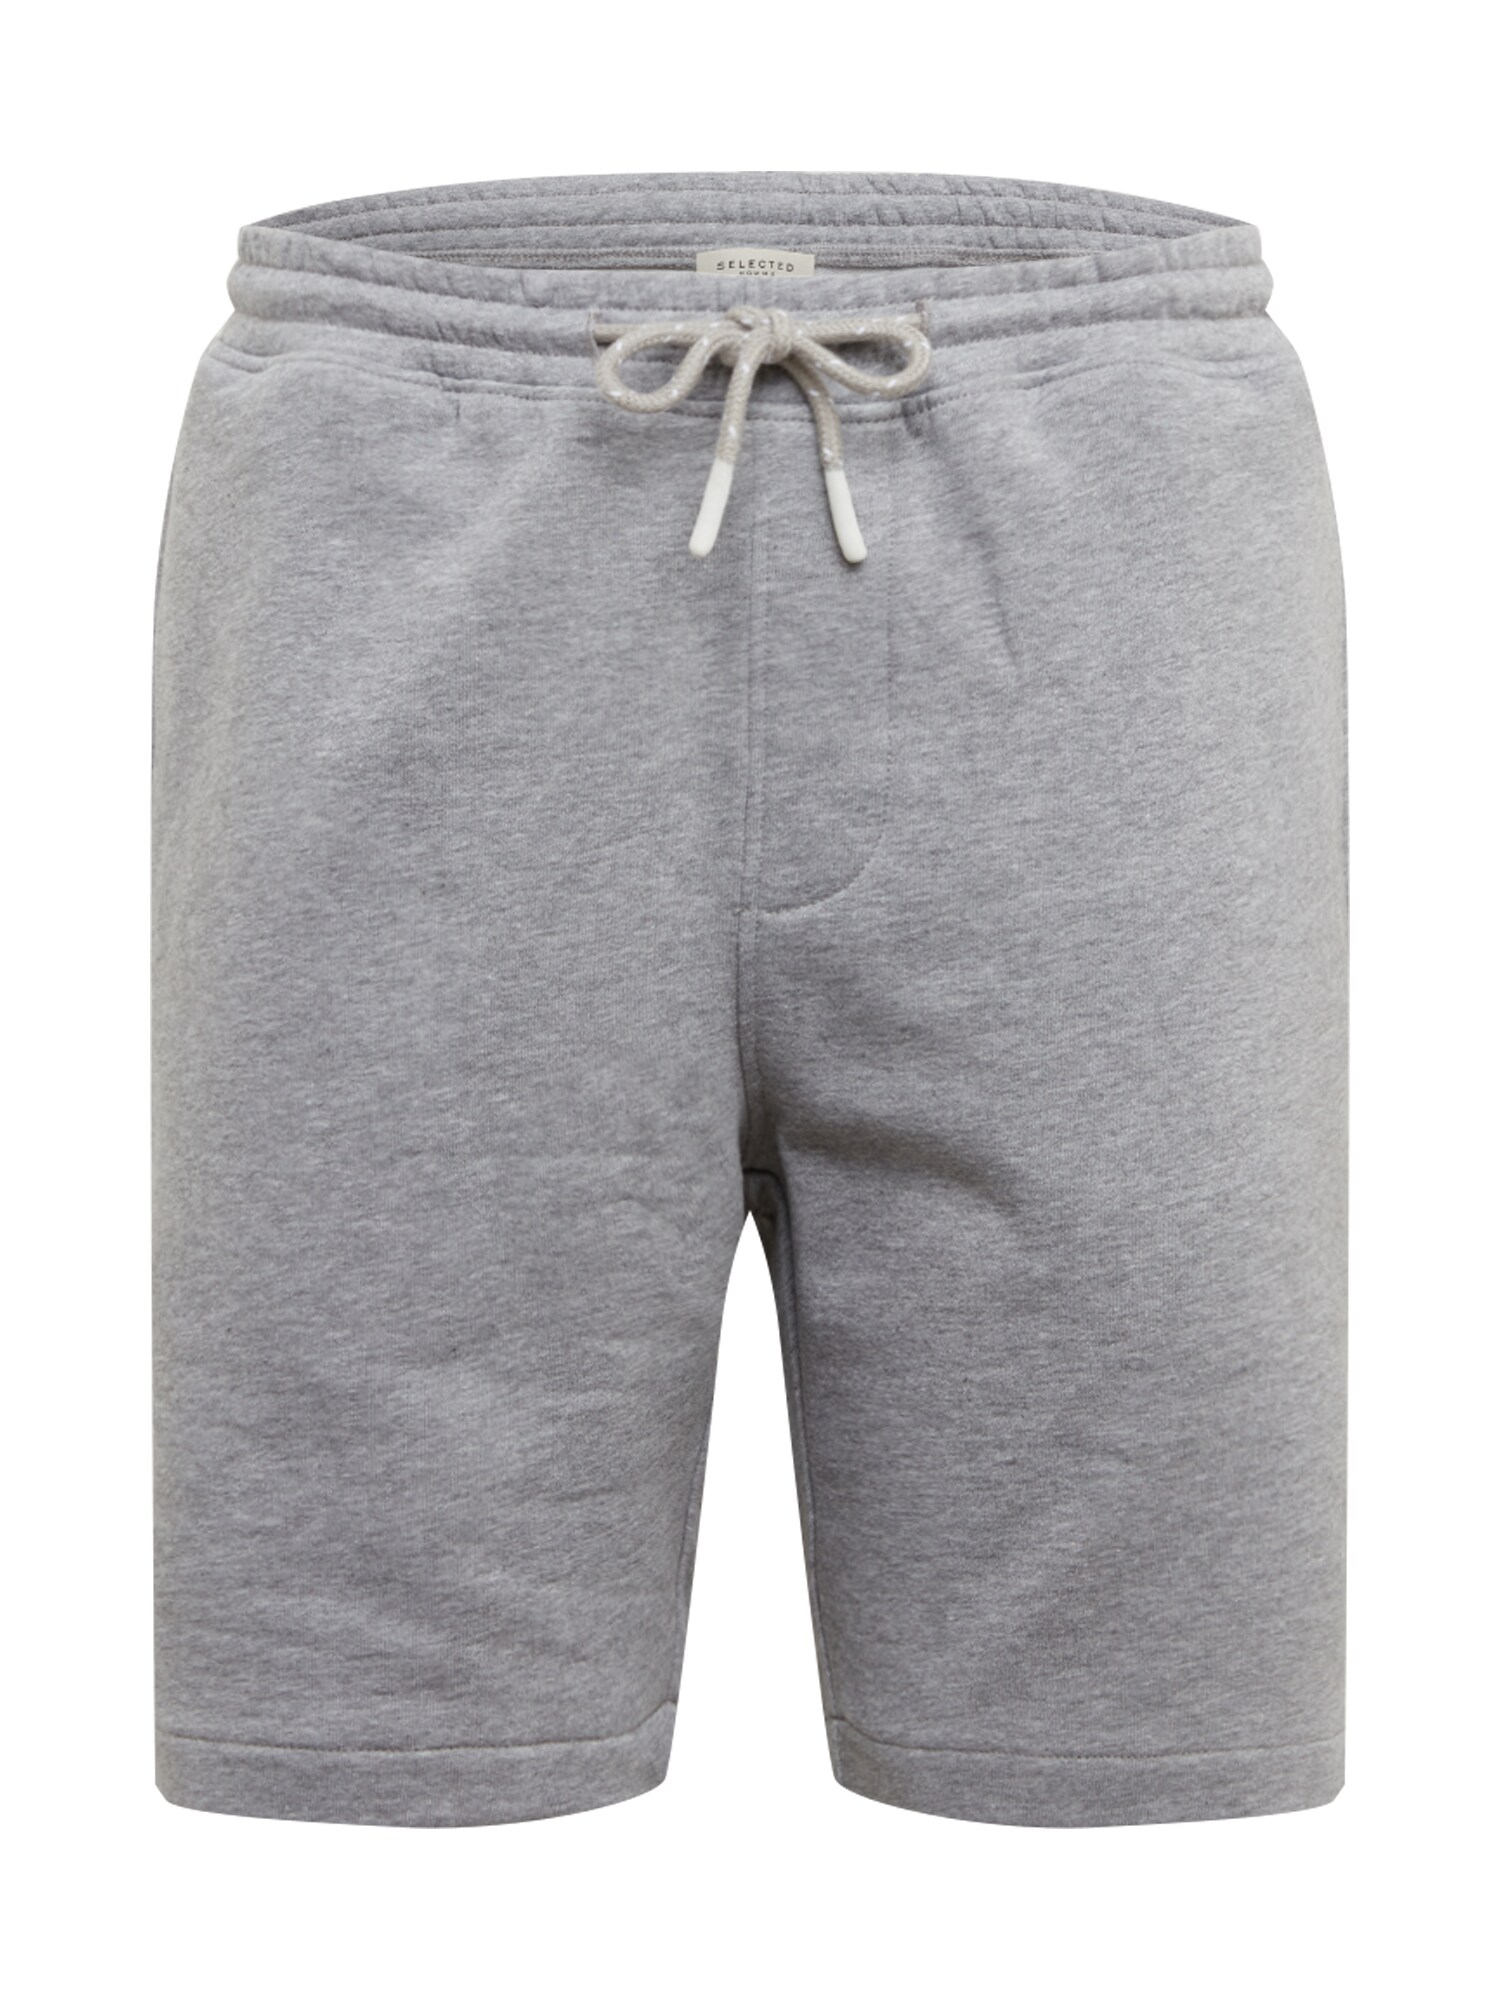 SELECTED HOMME Kalhoty SLHJEFFERSON SWEAT SHORTS W šedá Selected Homme